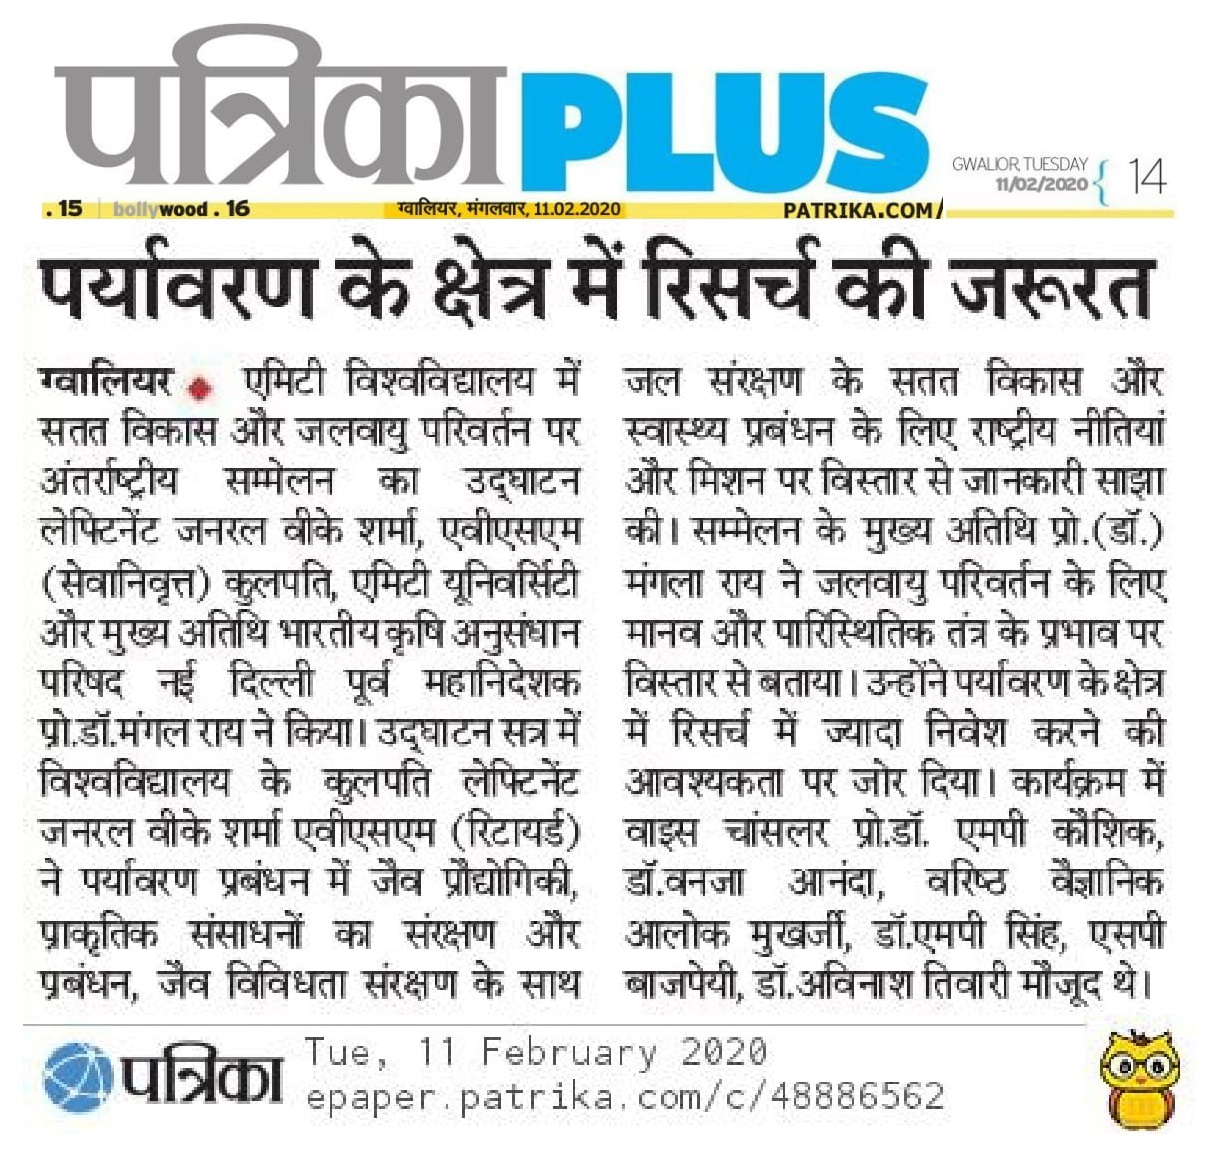 Patrika-11.2.2020-AUMP National Conference on Sustainable Development and Climate Change-Amity